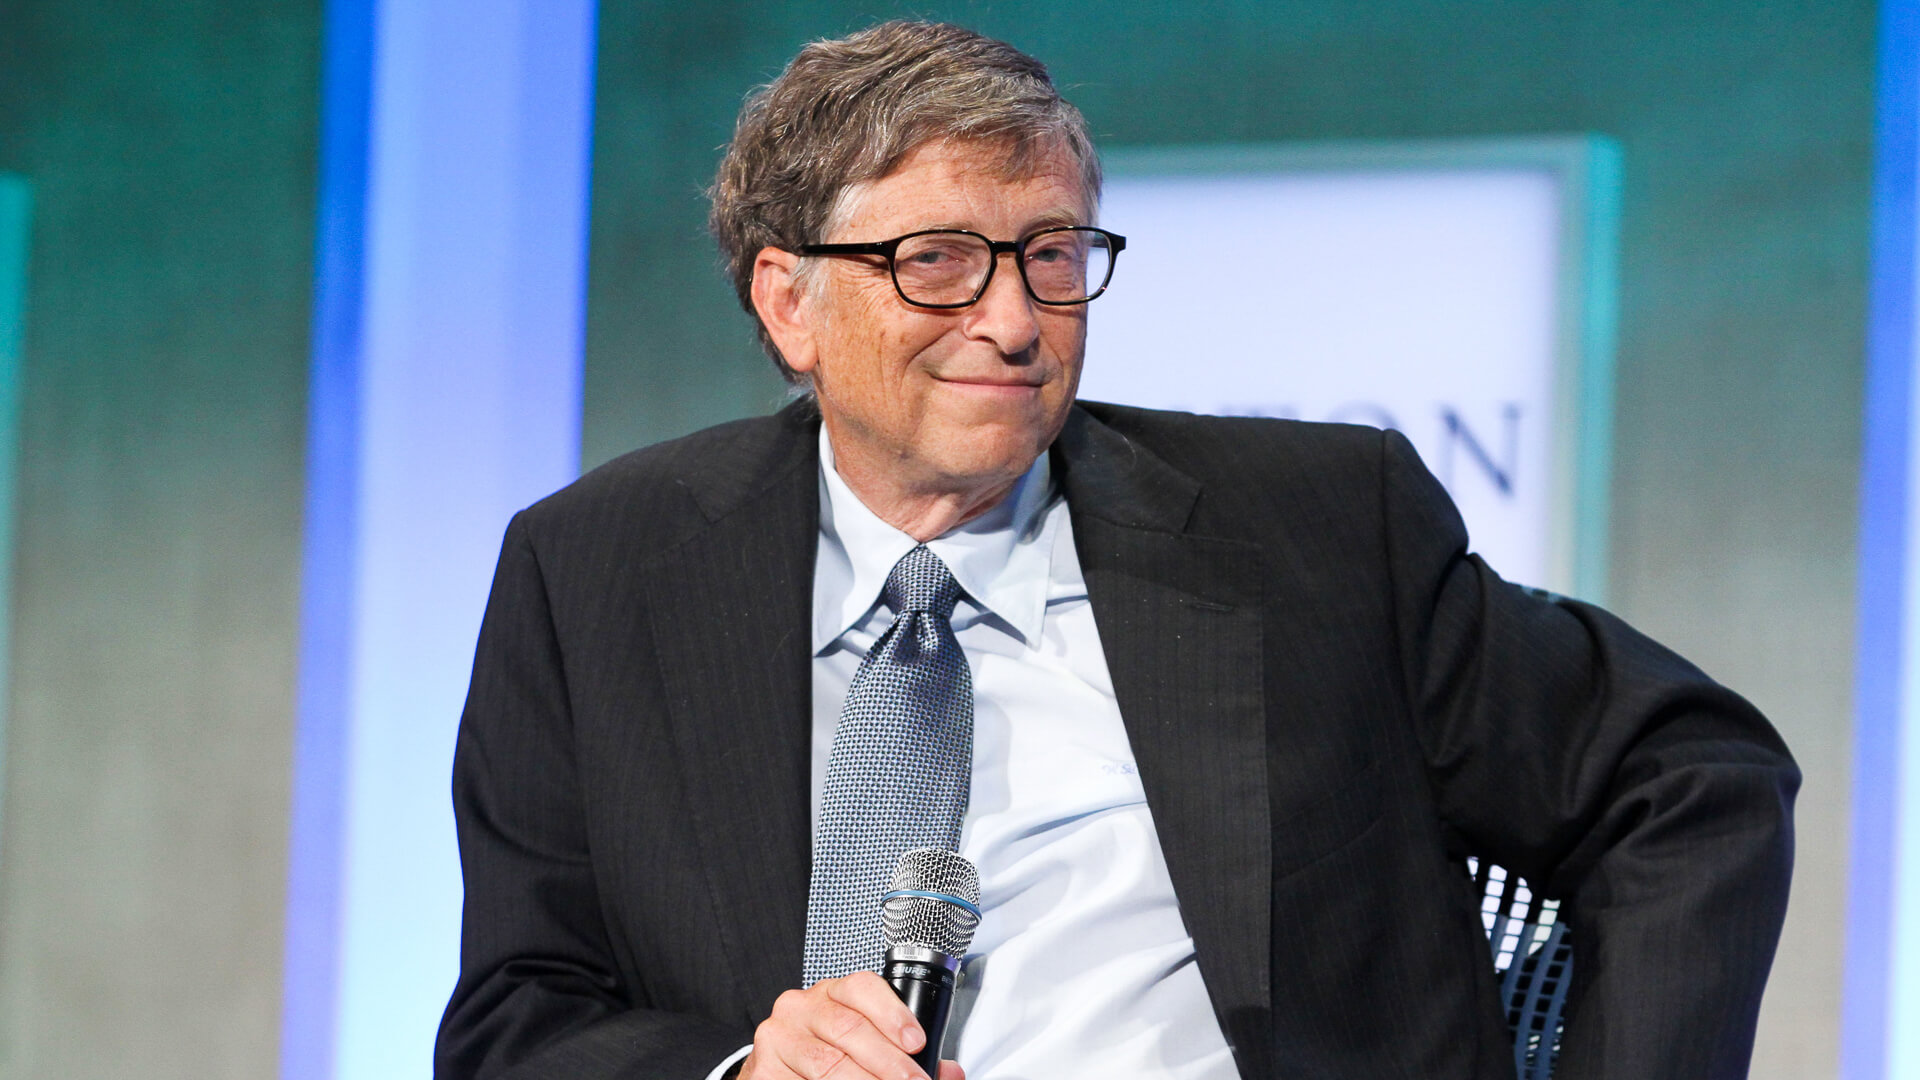 2020 in Review: The Year for Bill Gates